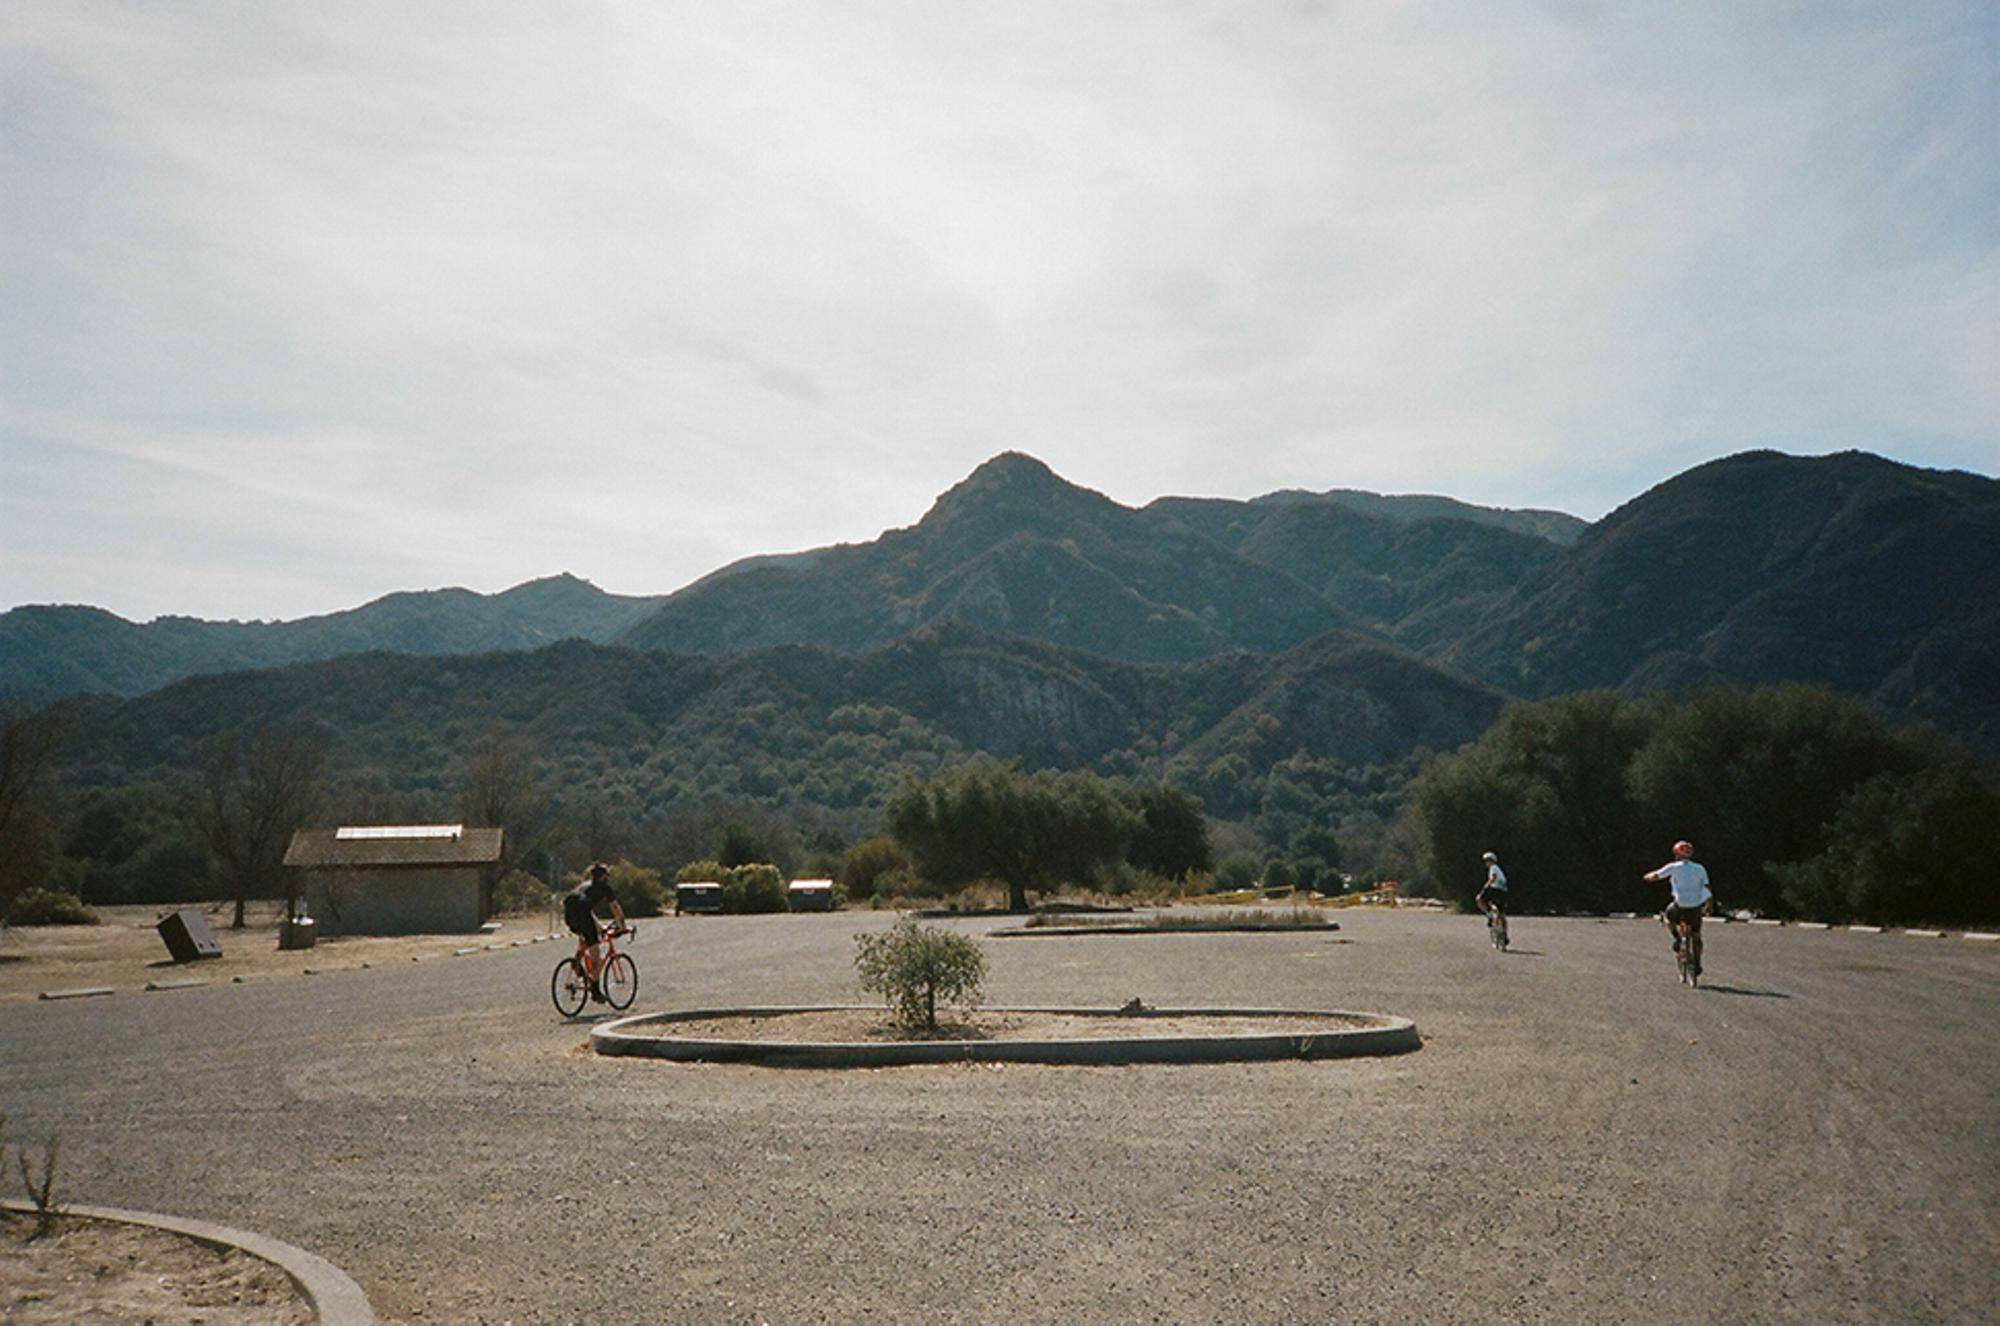 Rolling into Malibu Creek State Park, in search of the supposed Coke machine.